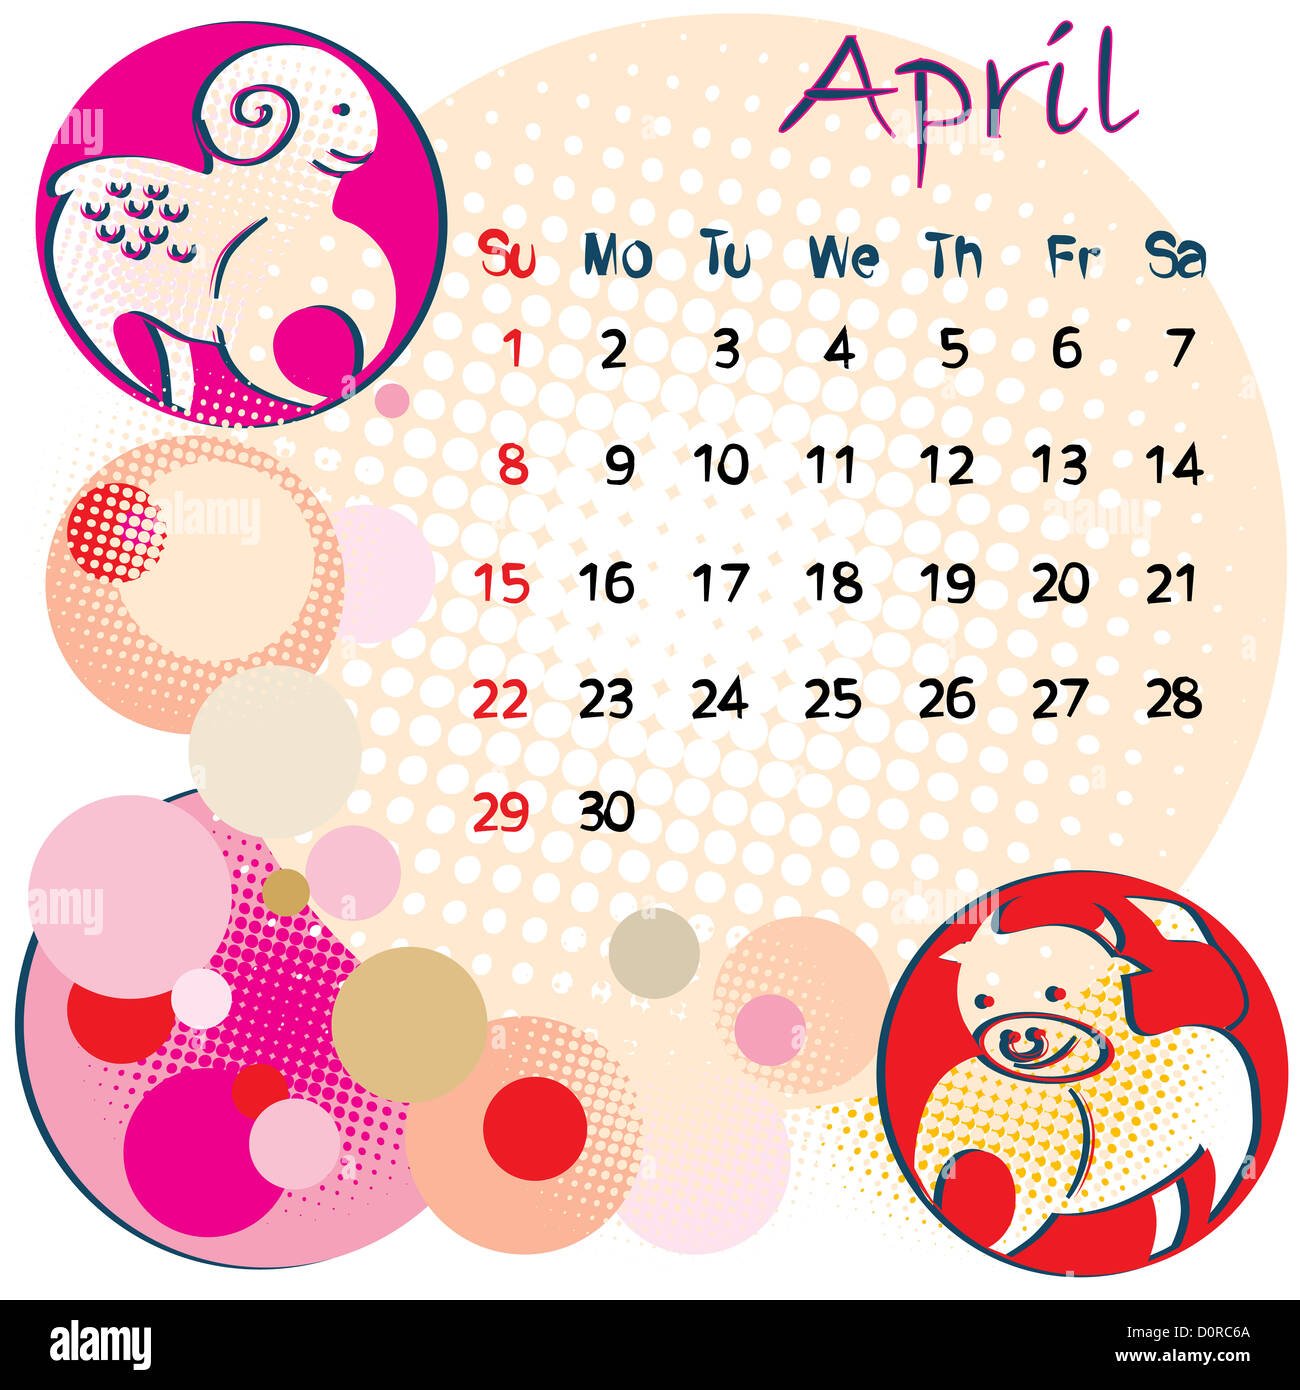 Horoscope Sign Aries Month April Stock Photos